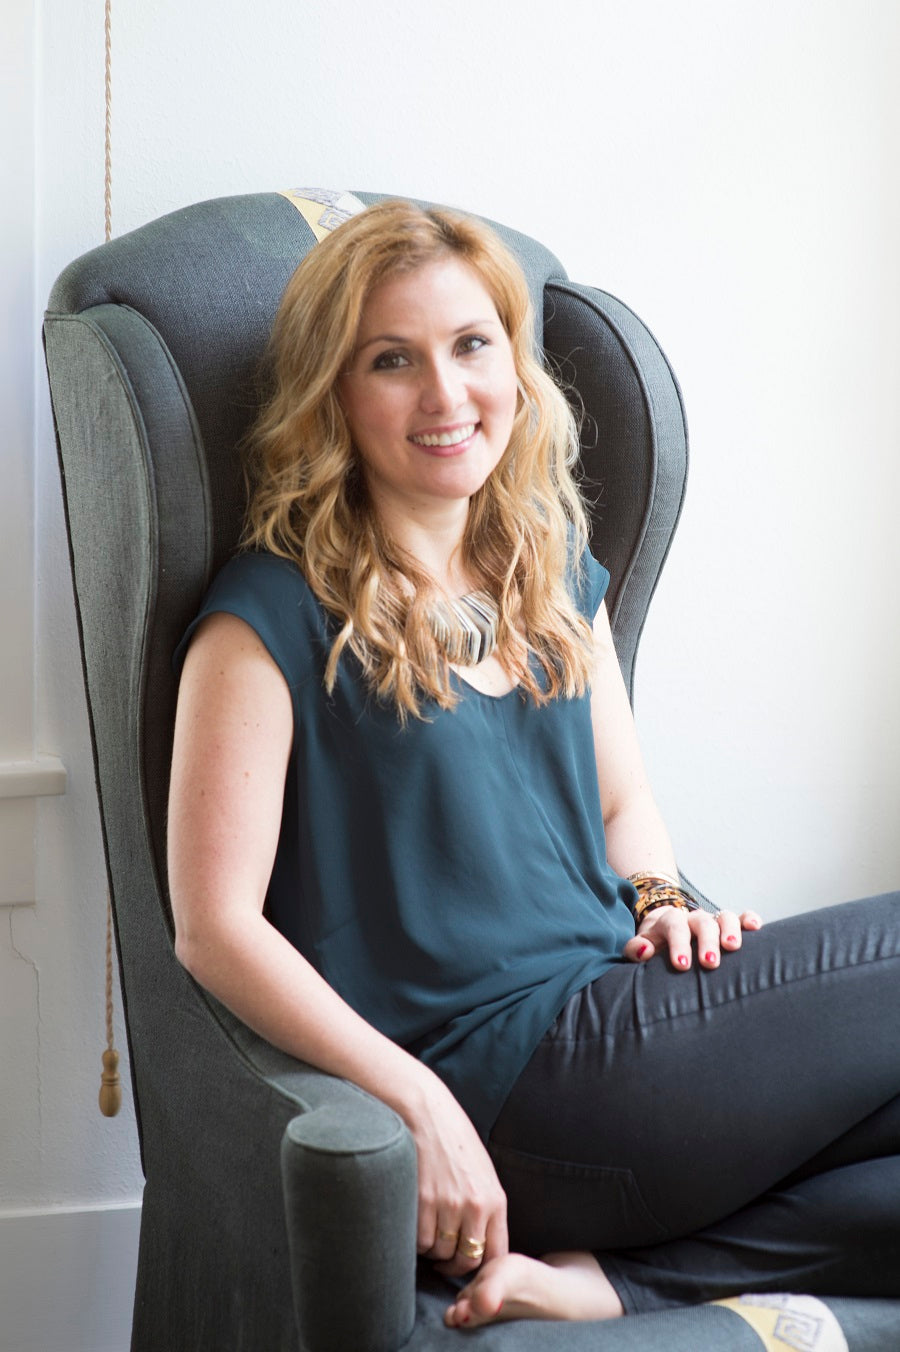 MEG LONERGAN: a day in the life of a passionate interior designer